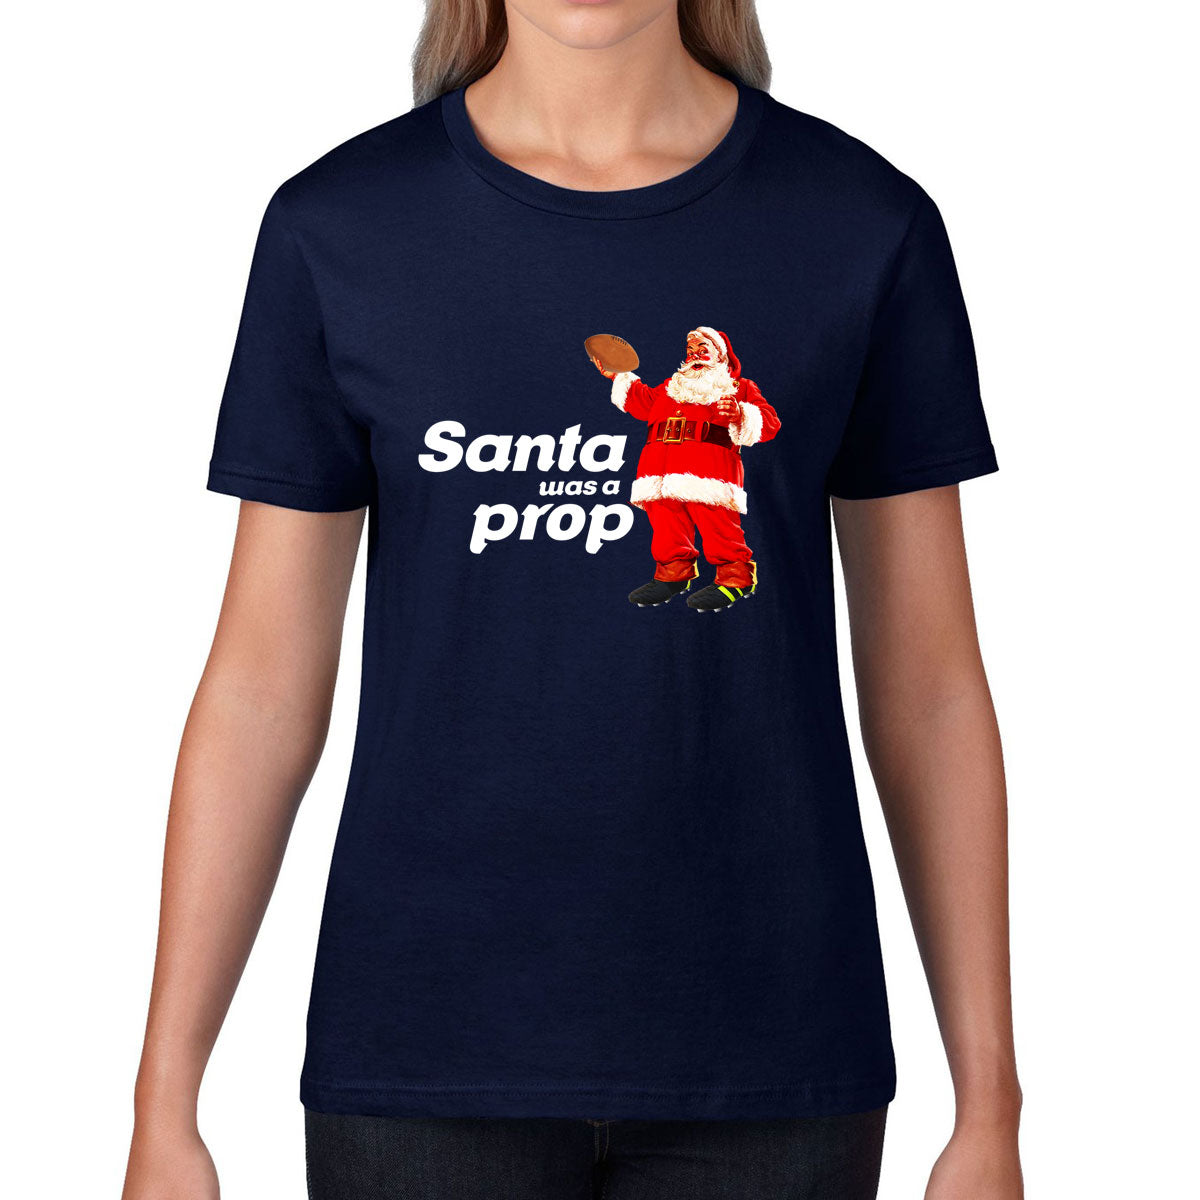 Women's Santa Was A Prop Rugby Christmas Tee - First XV rugbystuff.com